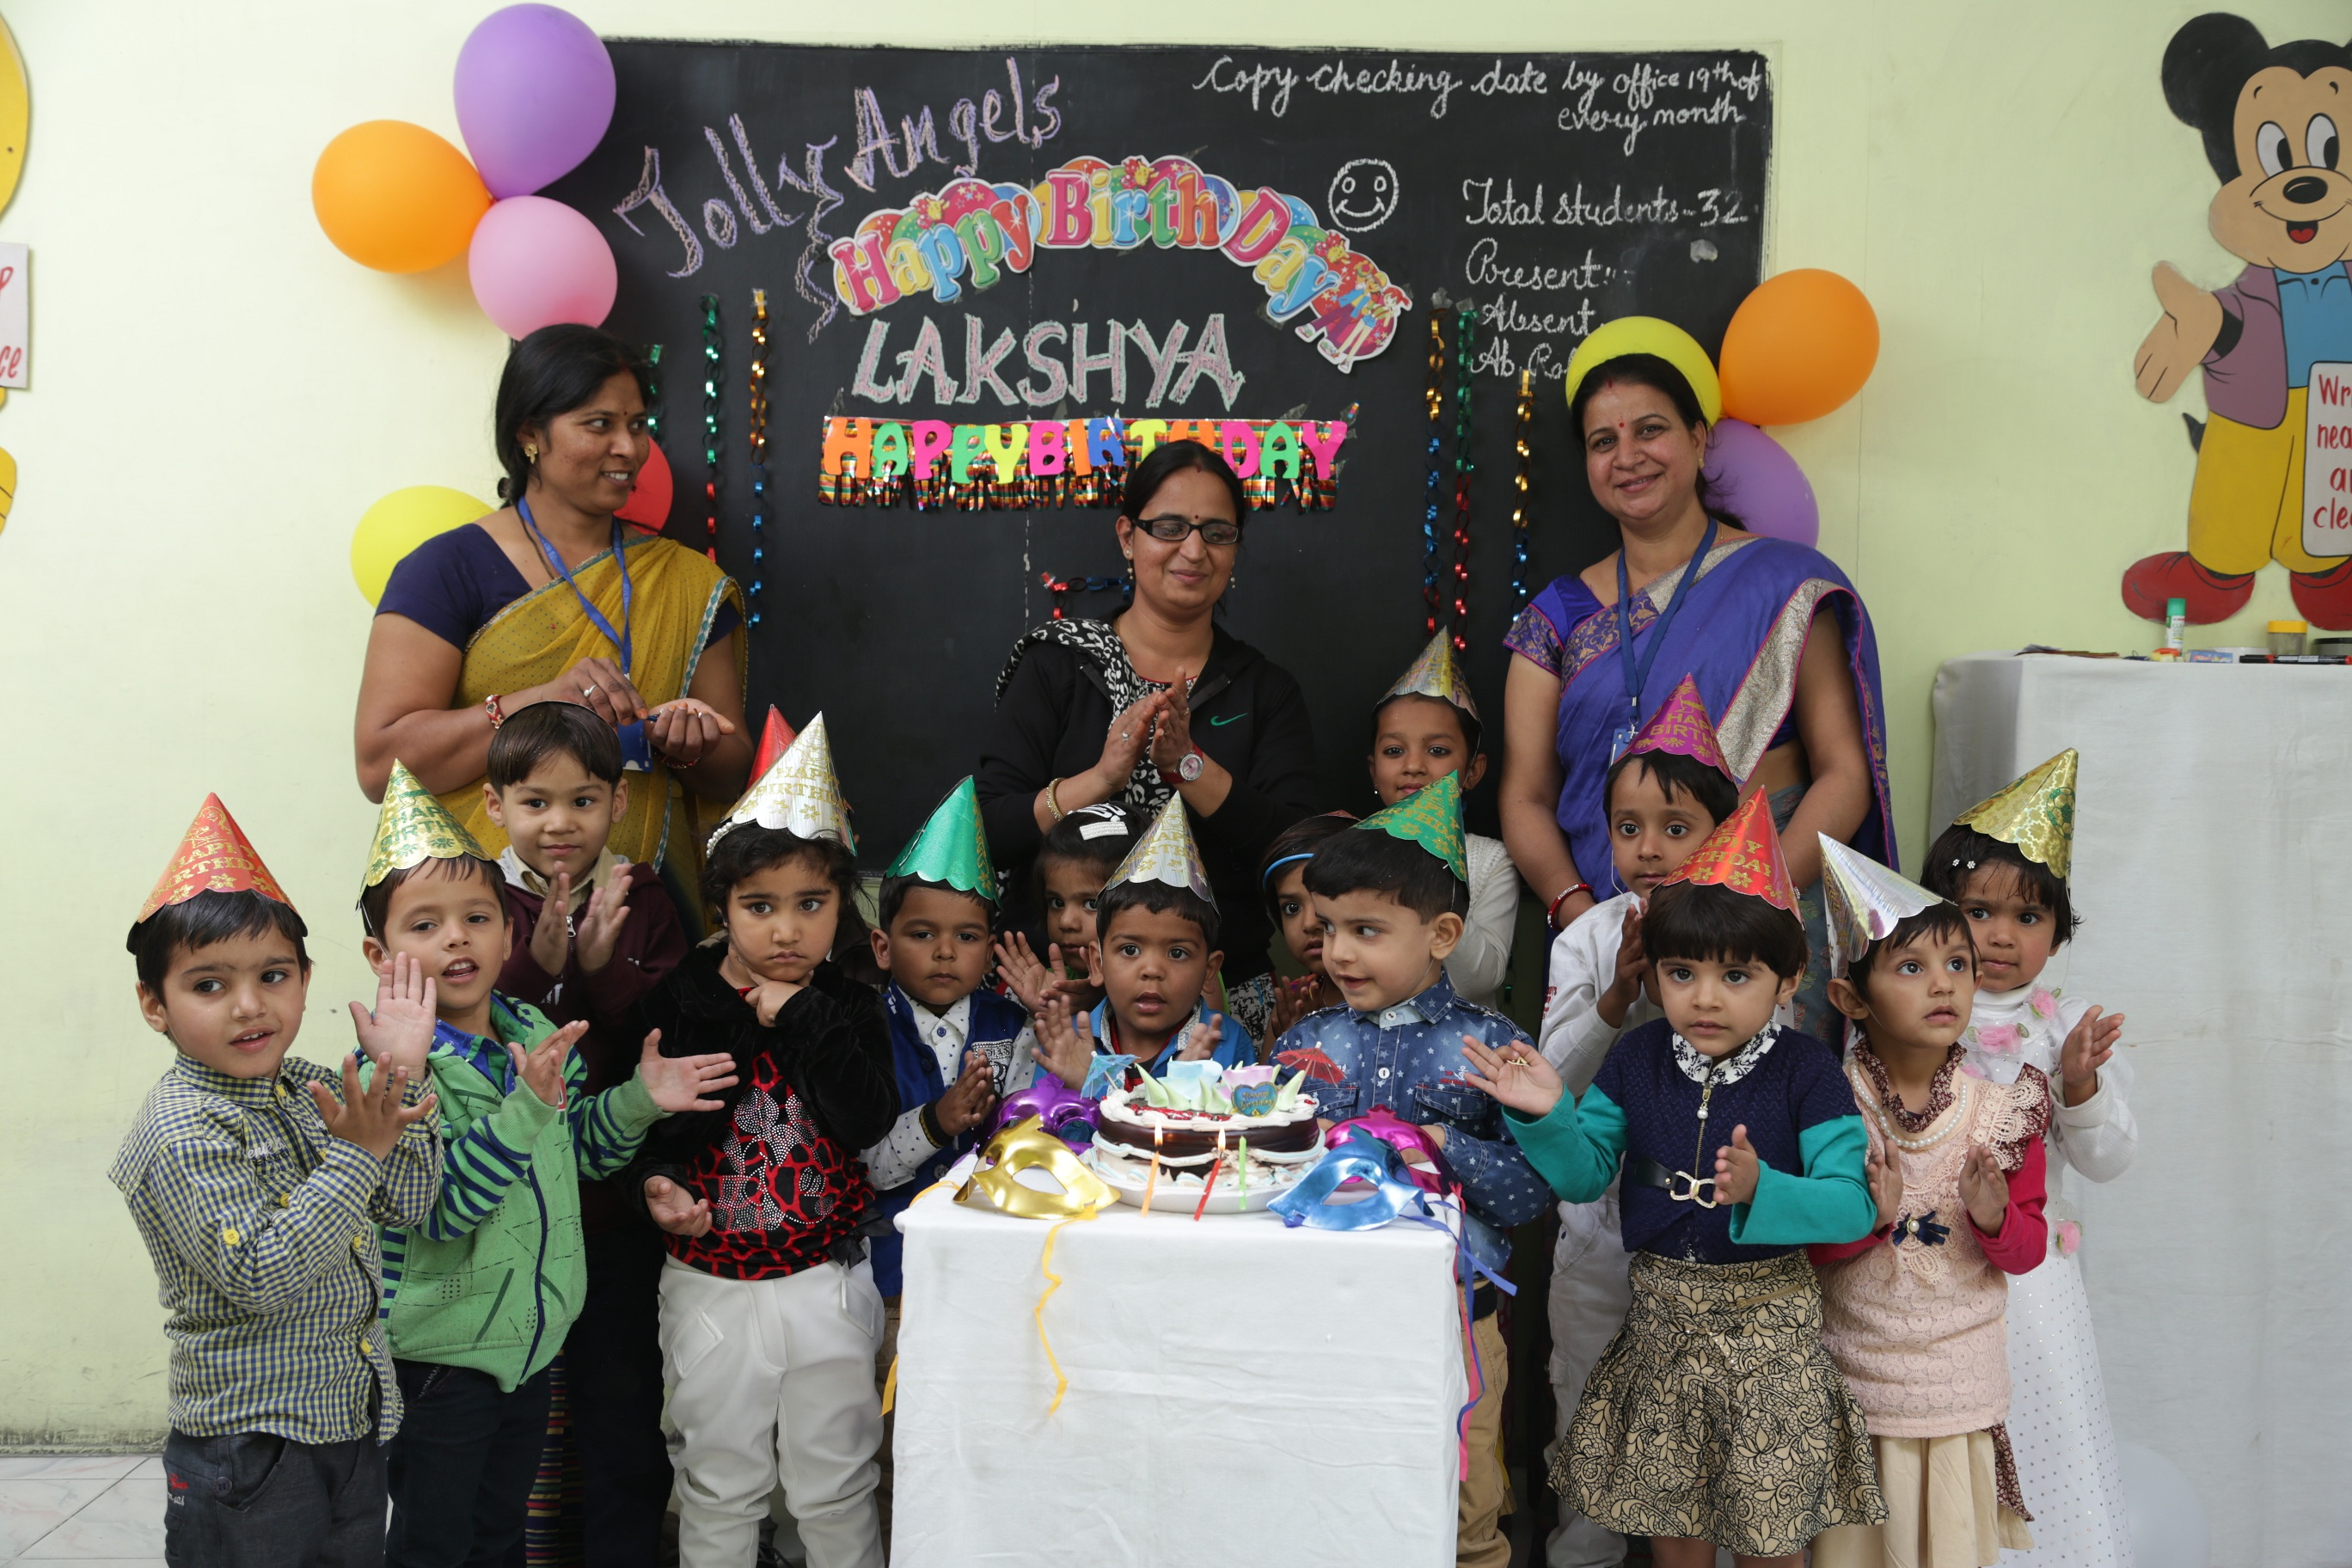 Jolly angels kids Birthday celebration